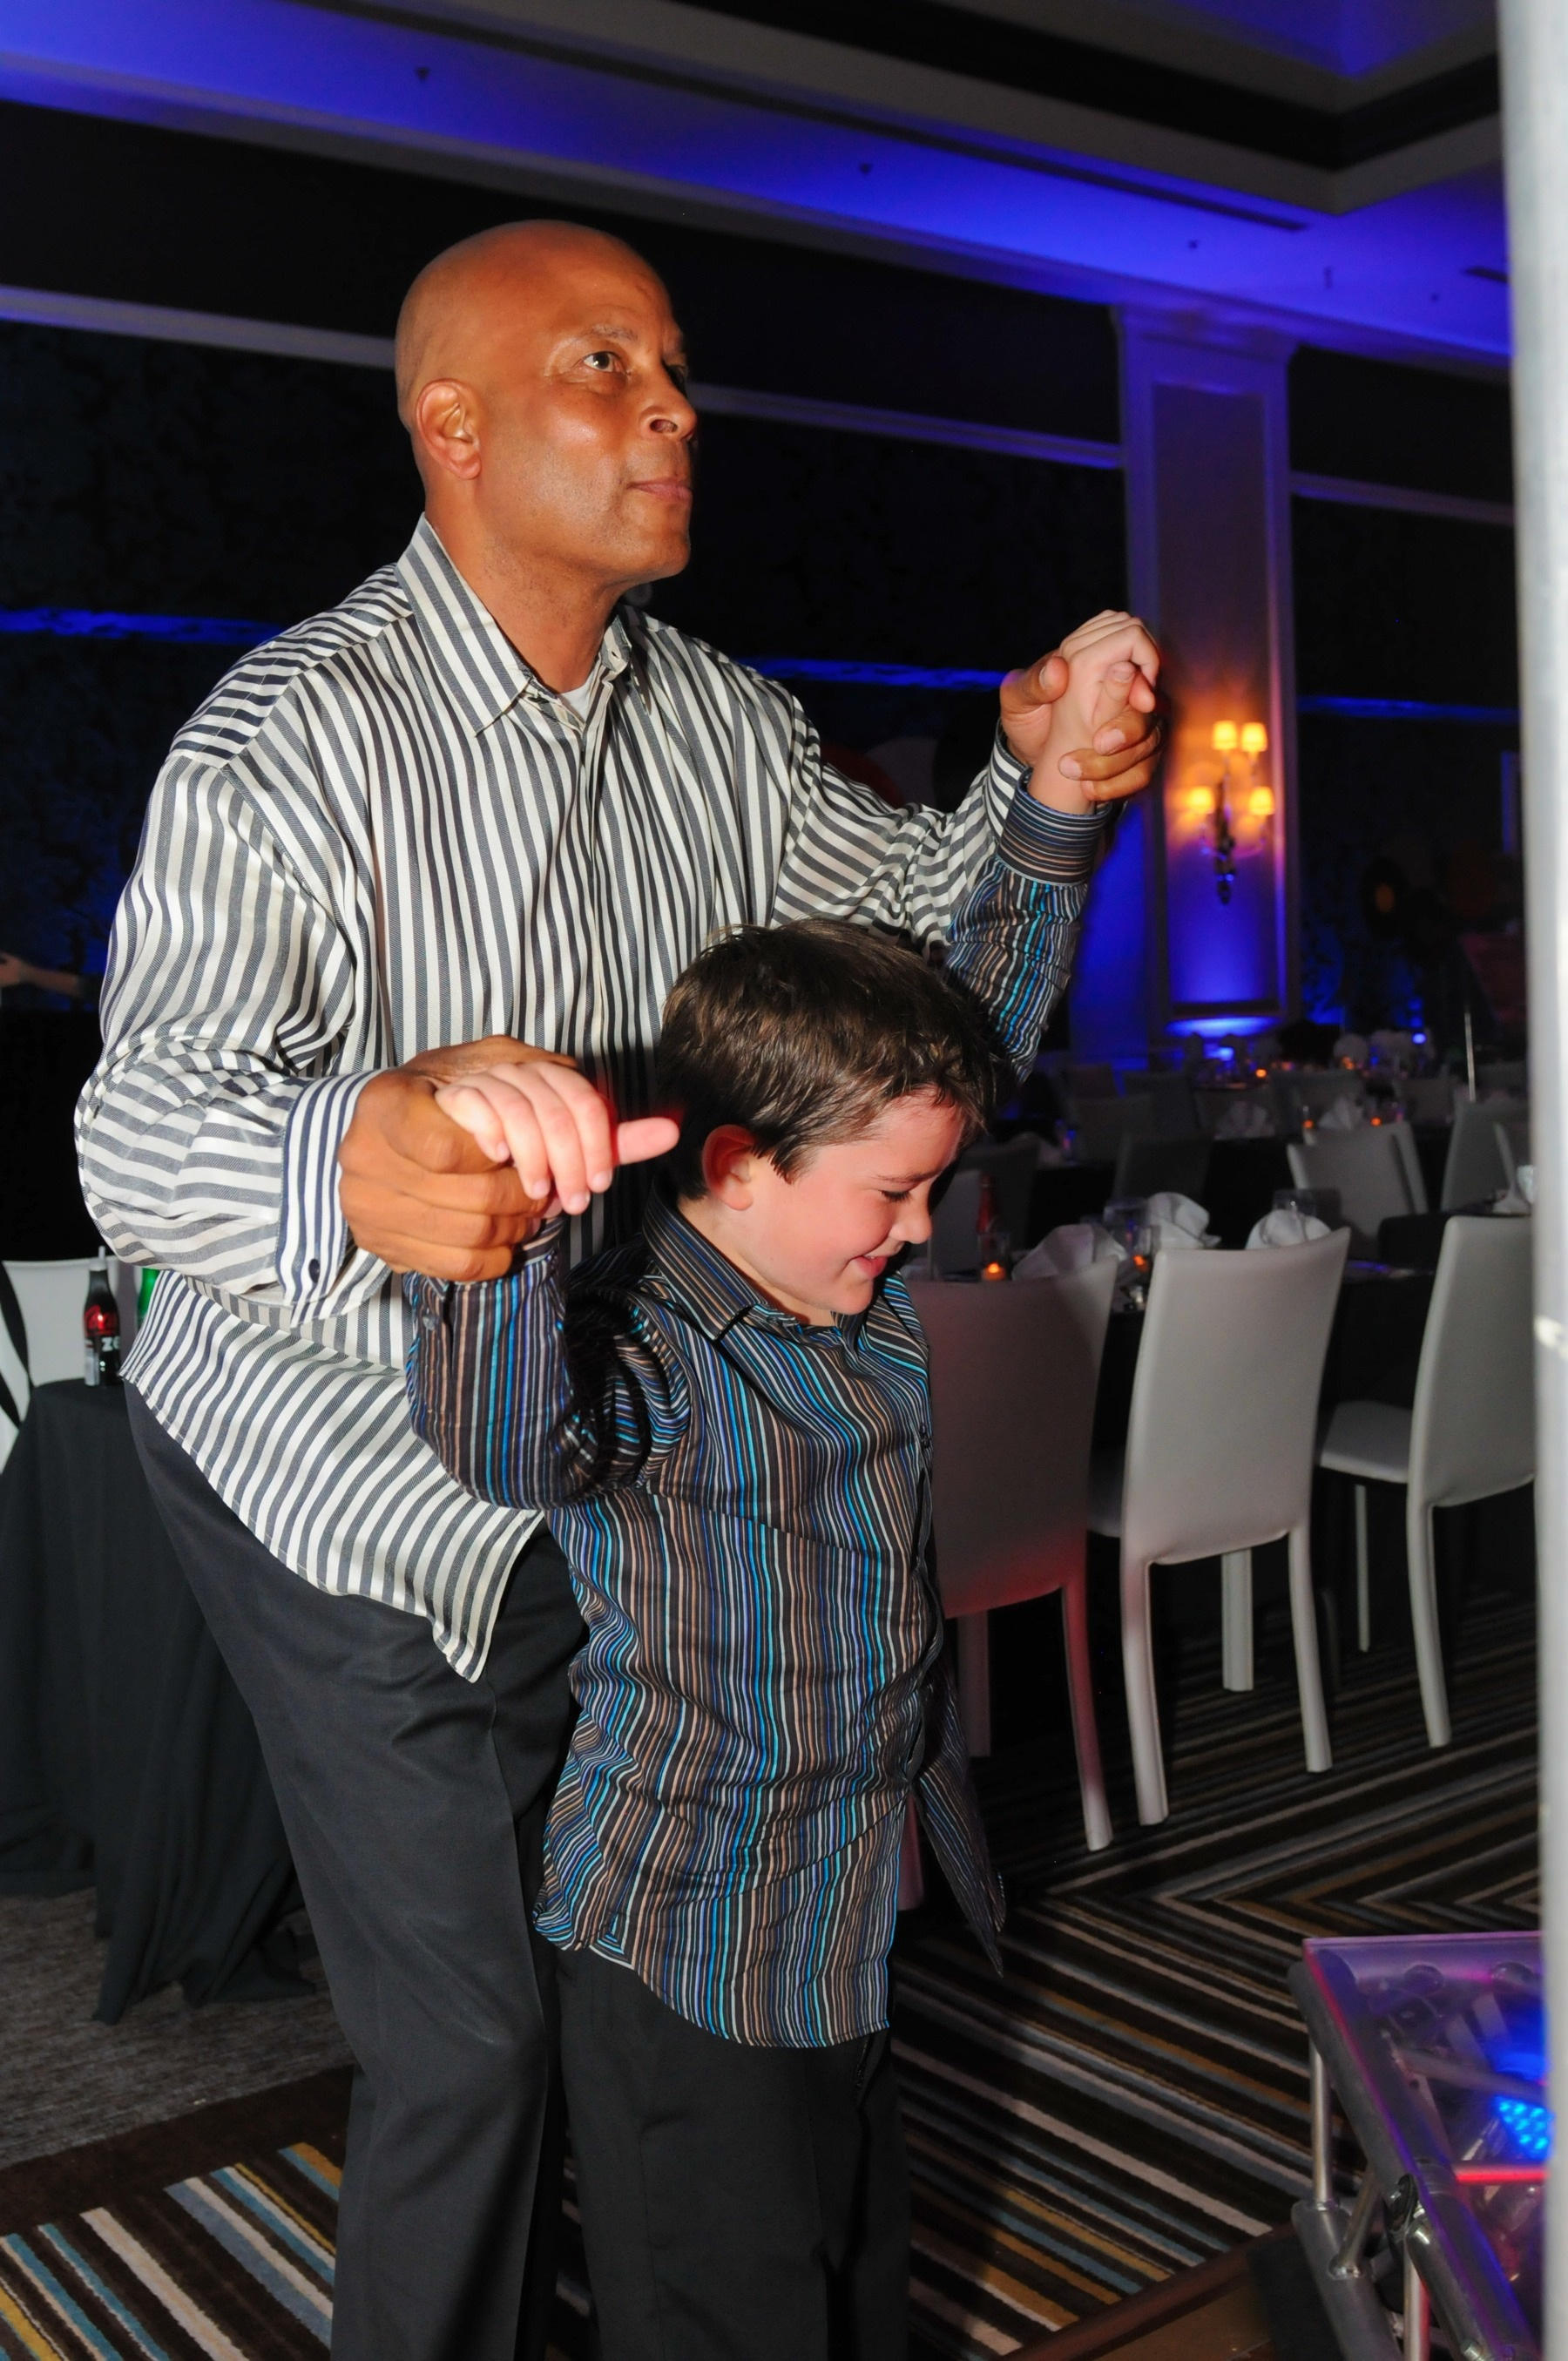 bat_mitzvah_bar_mitzvah_san_francisco_bay_area_photographer_party_photography_060